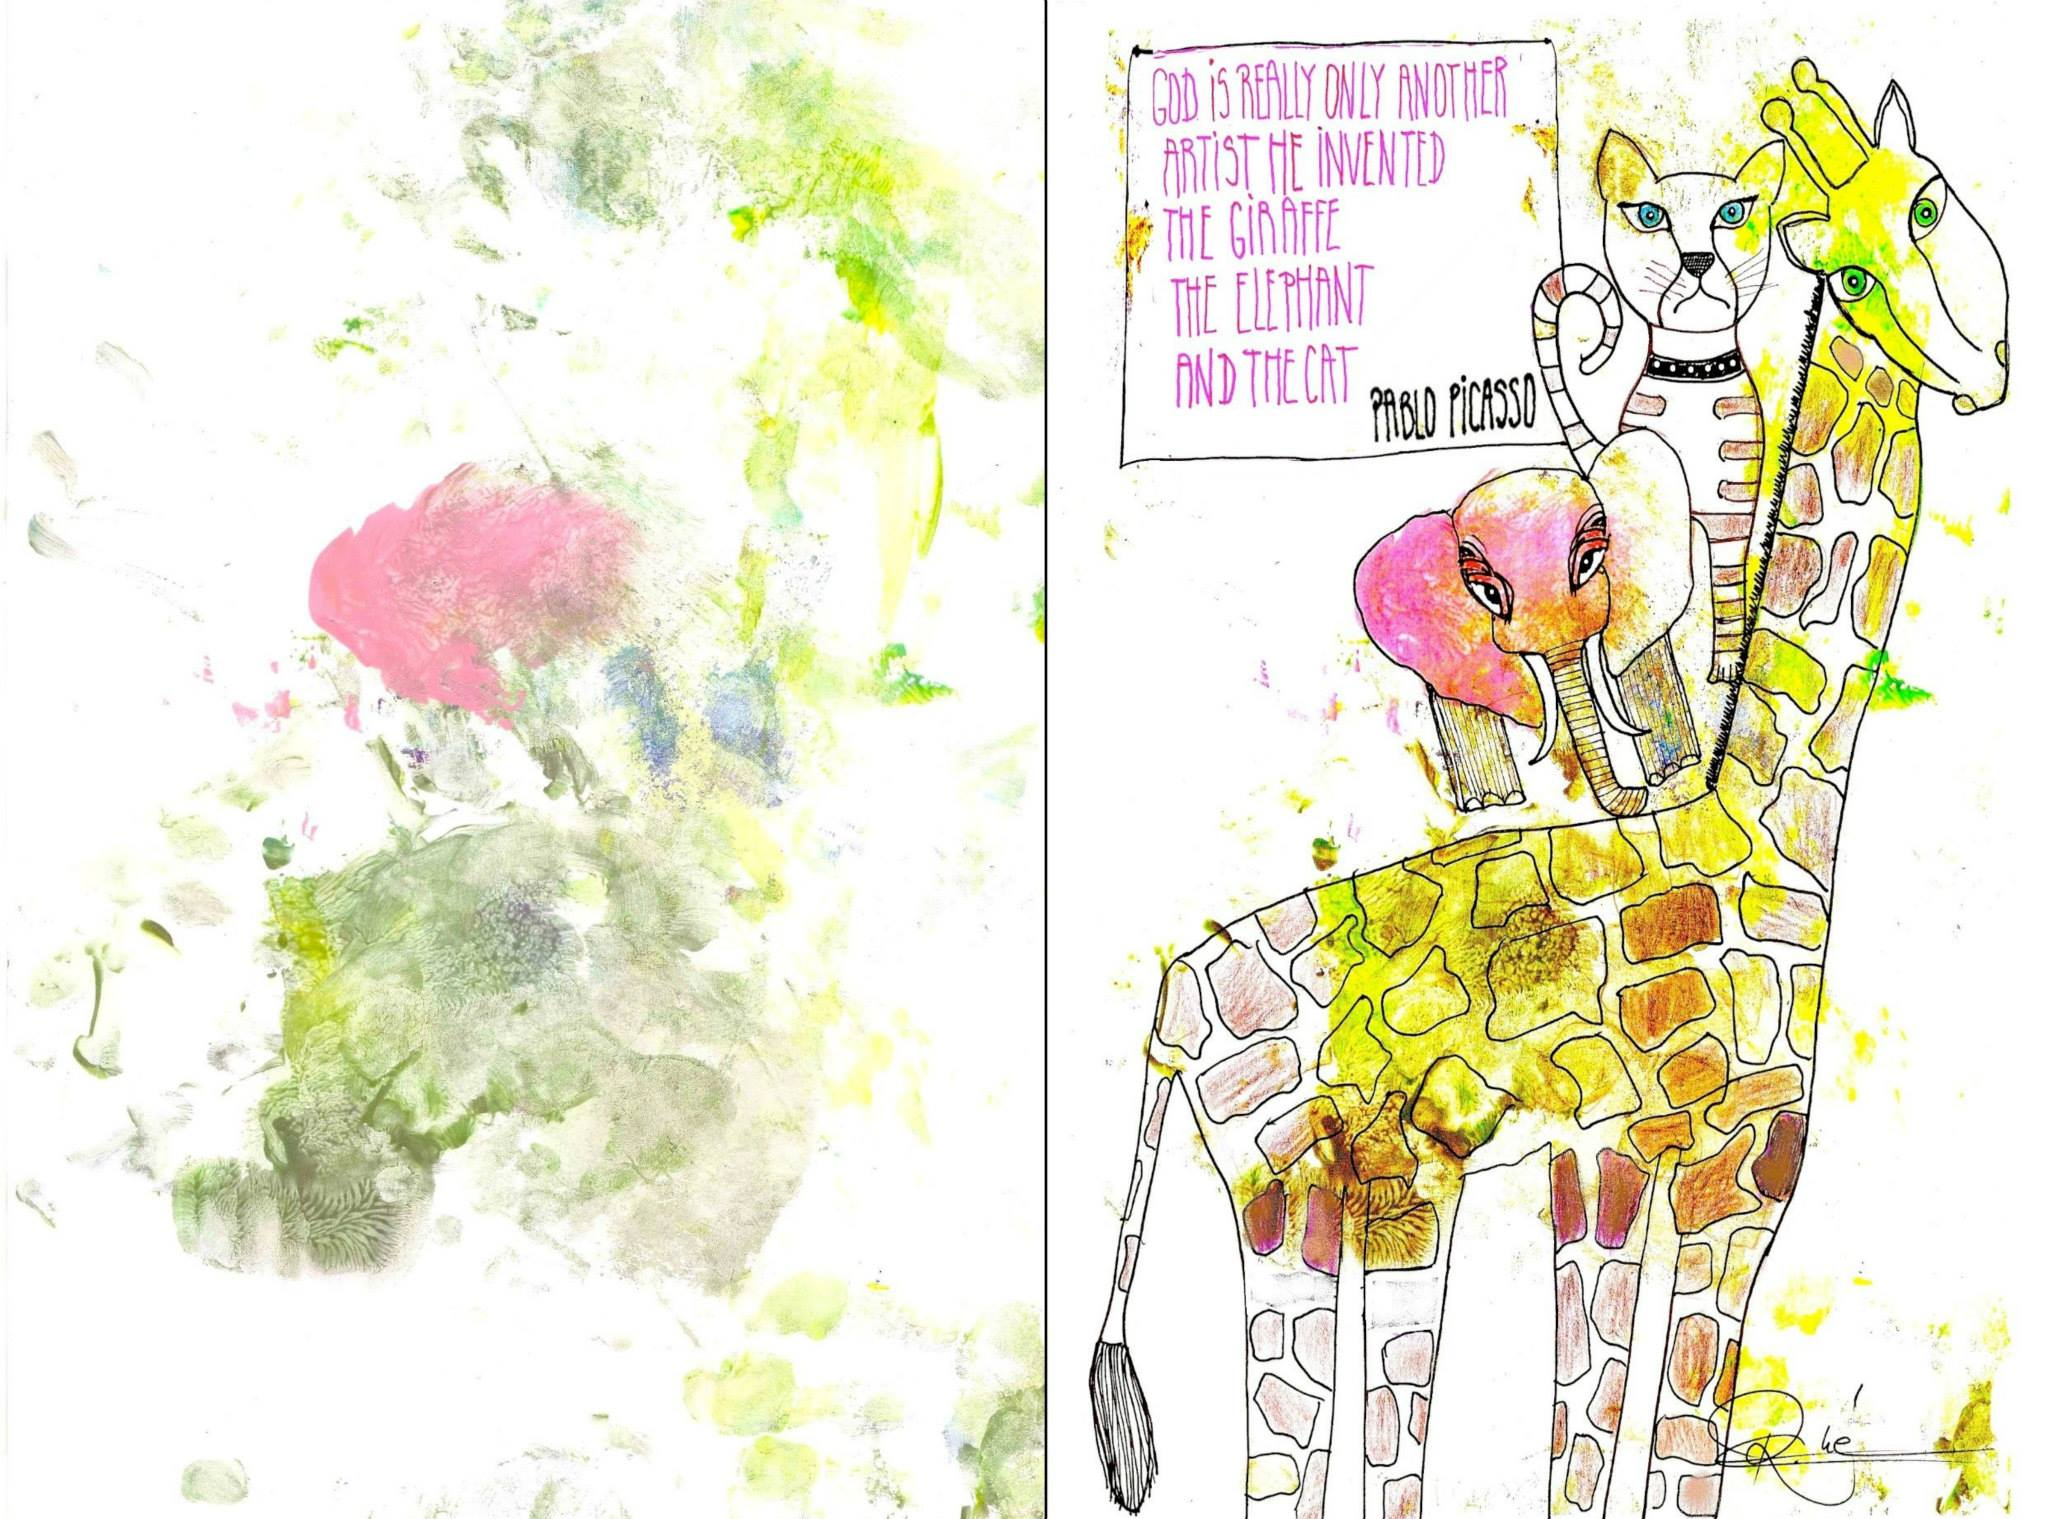 THE GIRAFFE, THE ELEPHANT AND THE CAT